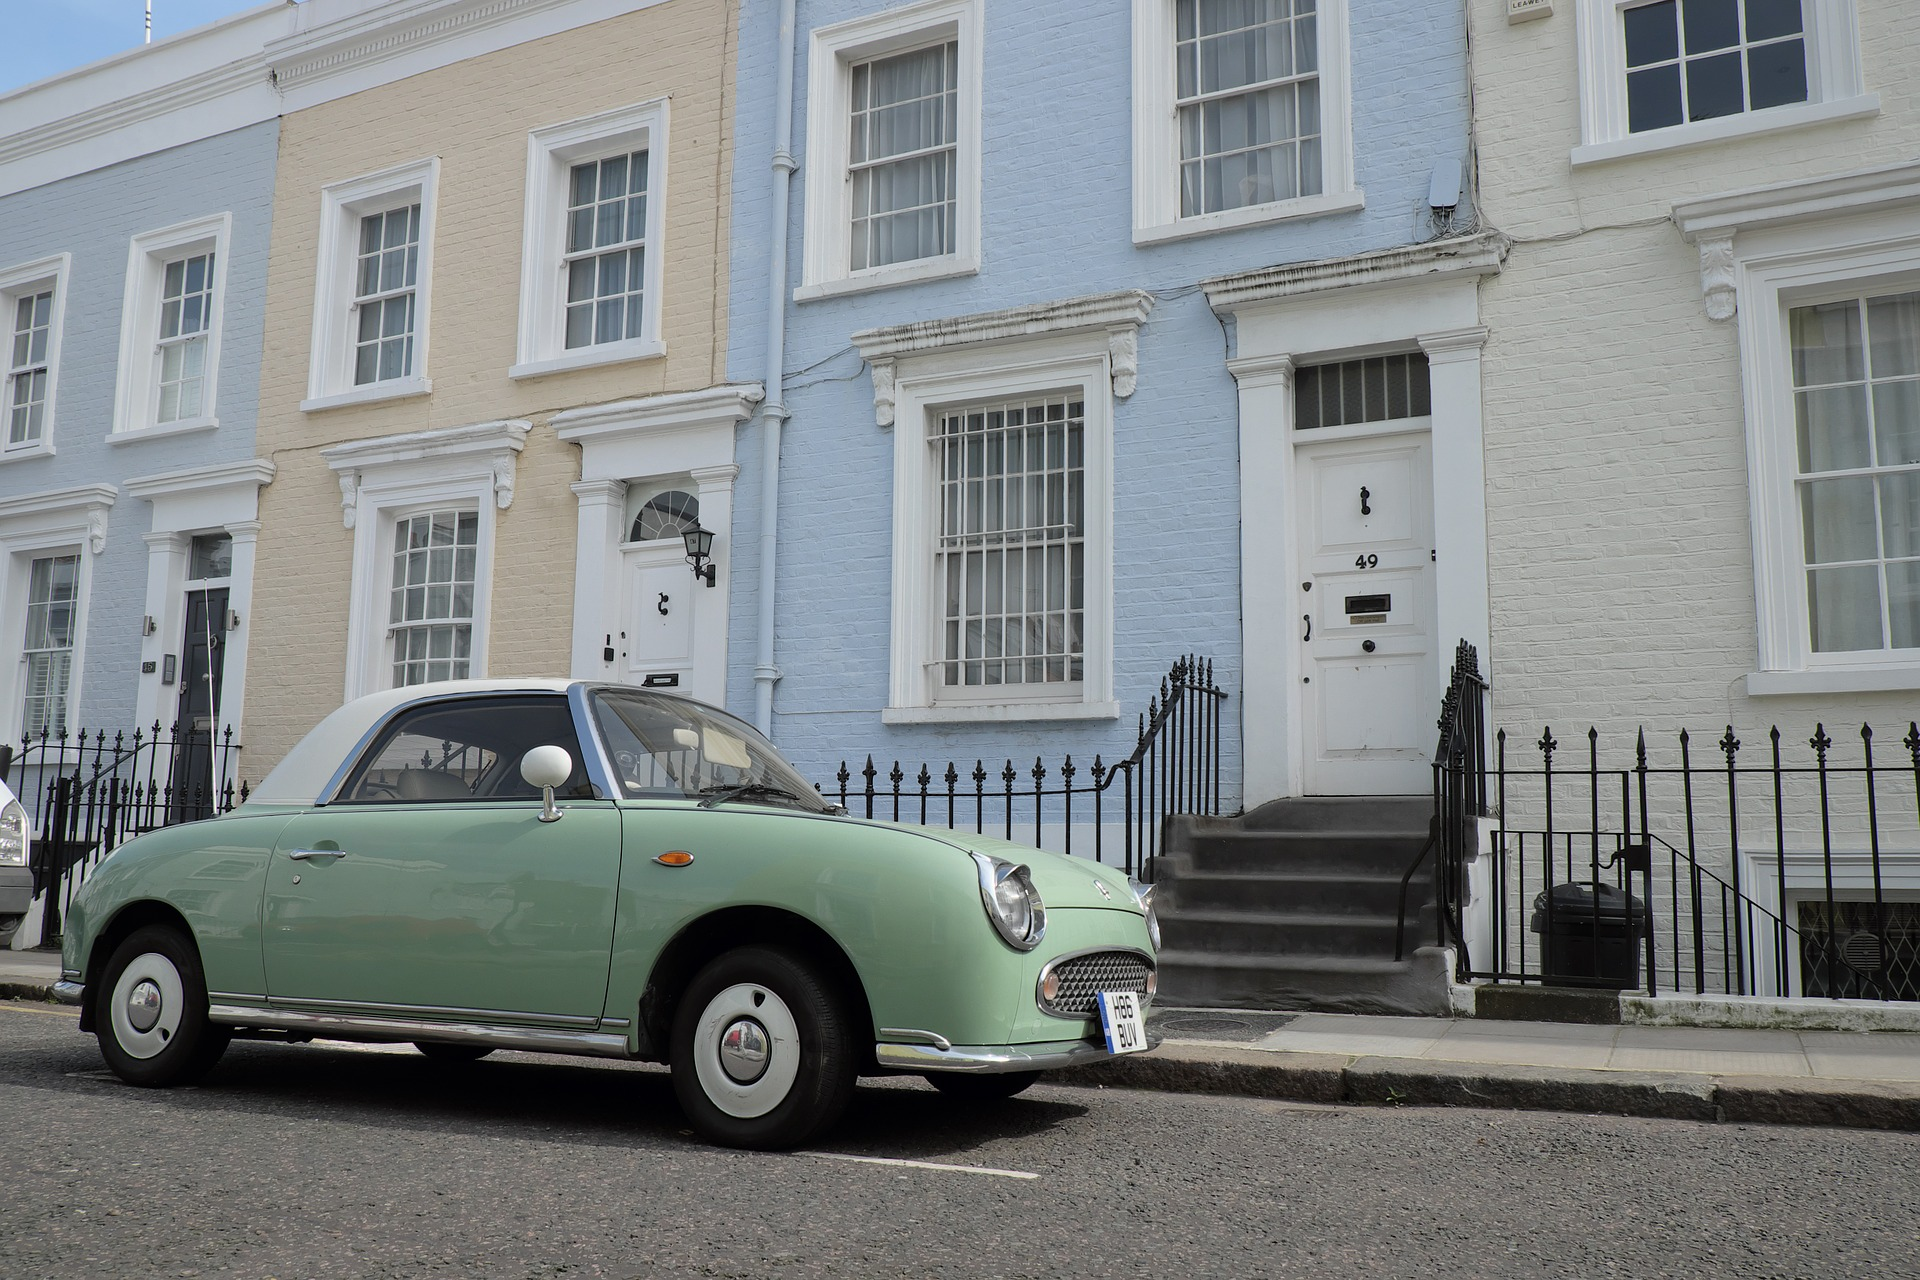 Townhouse in Notting Hill